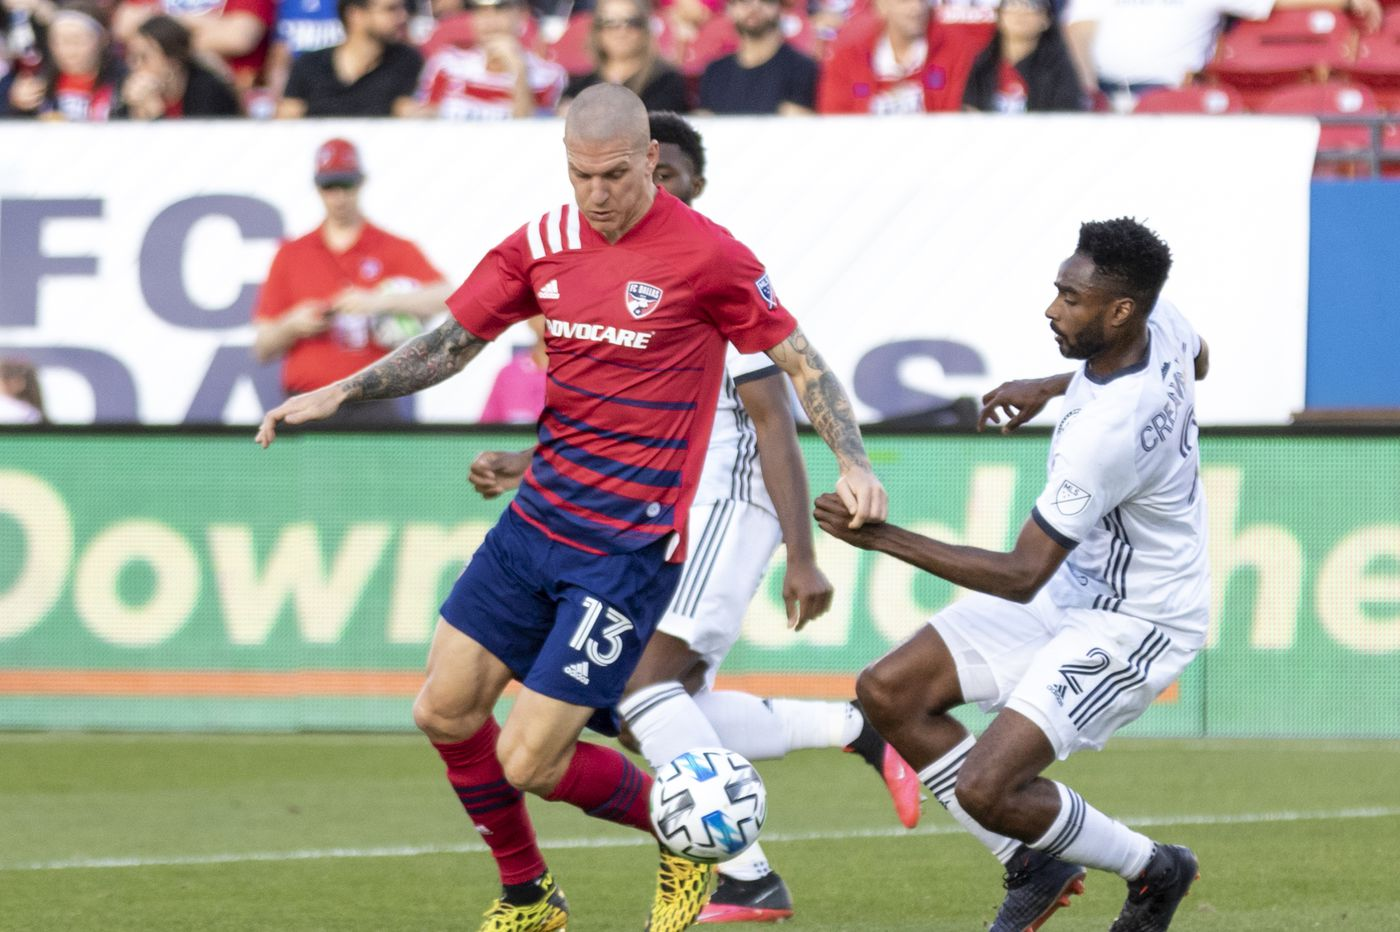 Warren Creavalle's start a worse sign for Union than loss at FC Dallas | Jonathan Tannenwald